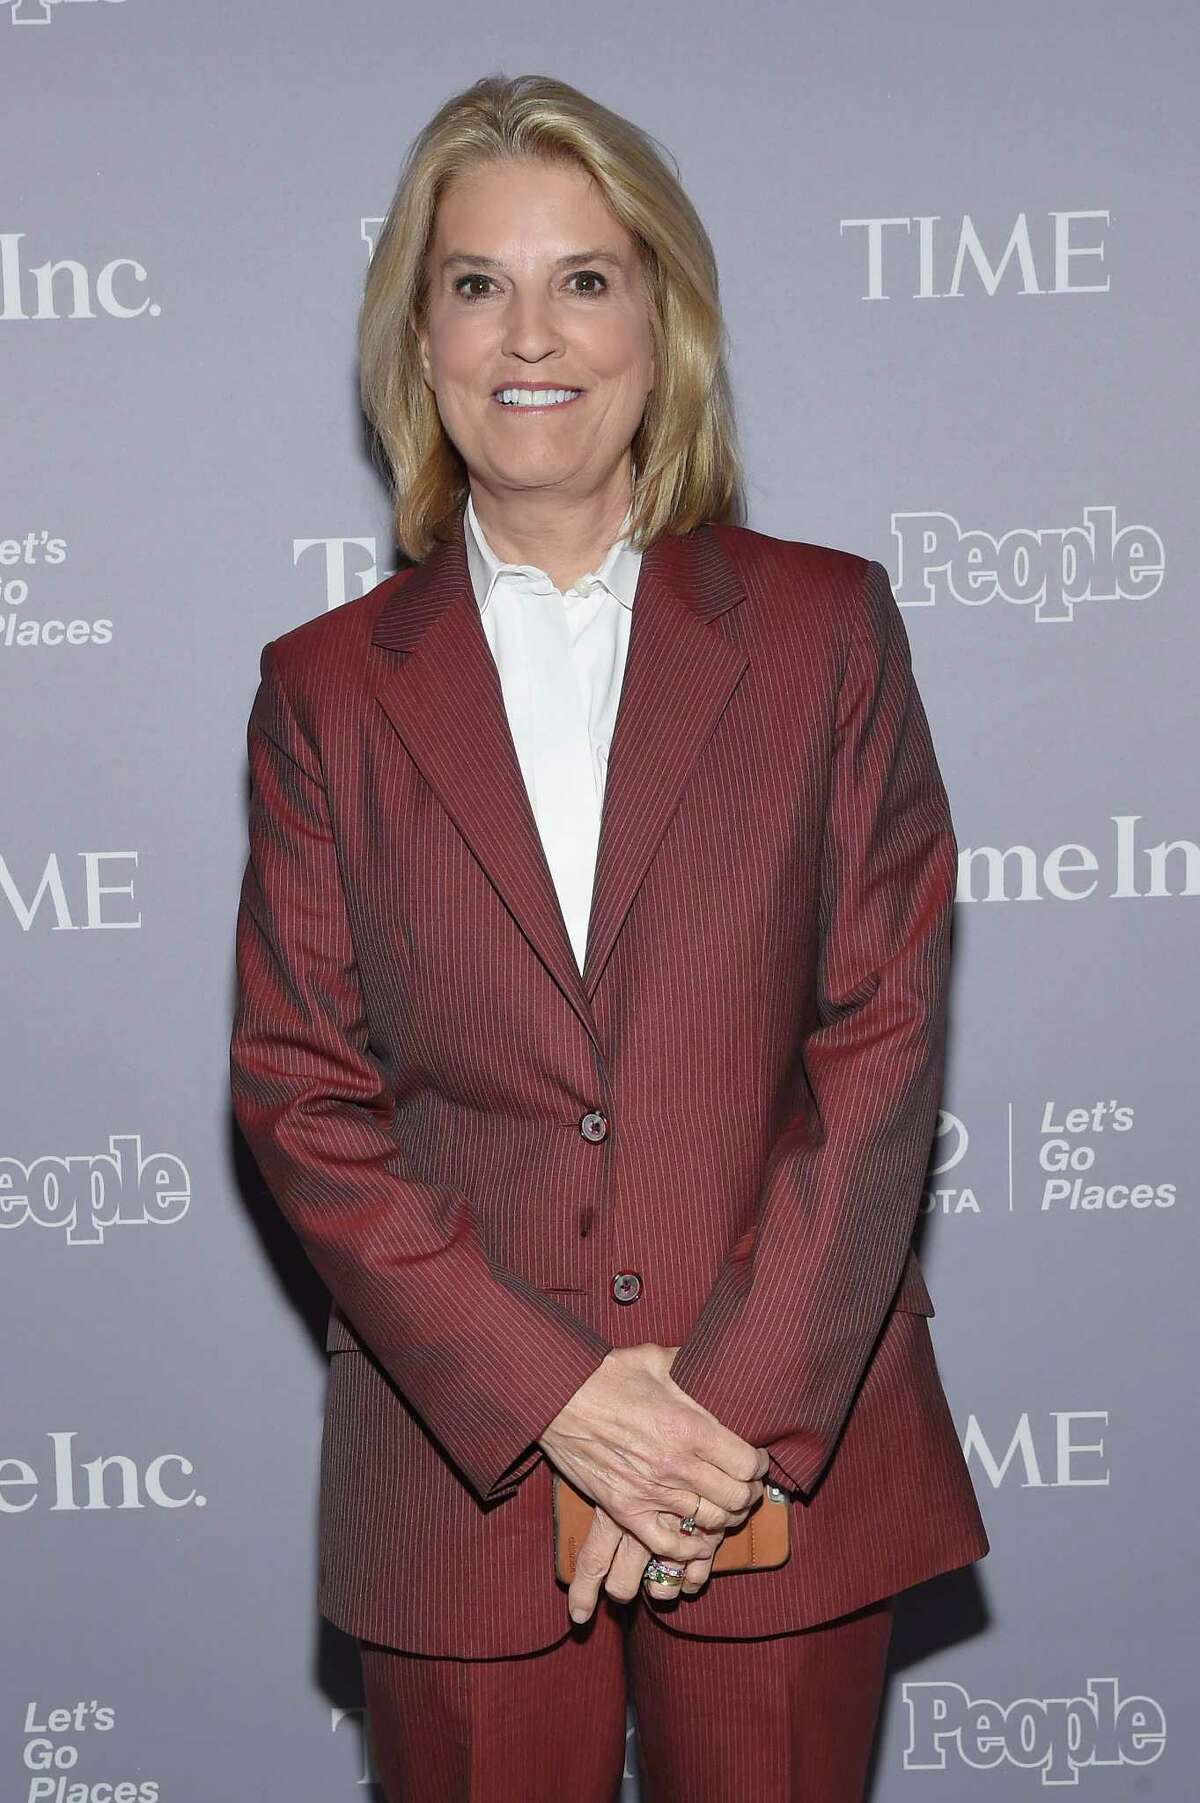 WASHINGTON, DC - APRIL 29: Journalist Greta Van Susteren attends TIME and People's Annual White House Correspondents' Association Cocktail Party at St Regis Hotel on April 29, 2016 in Washington, DC. (Photo by Larry Busacca/Getty Images for Time and People )